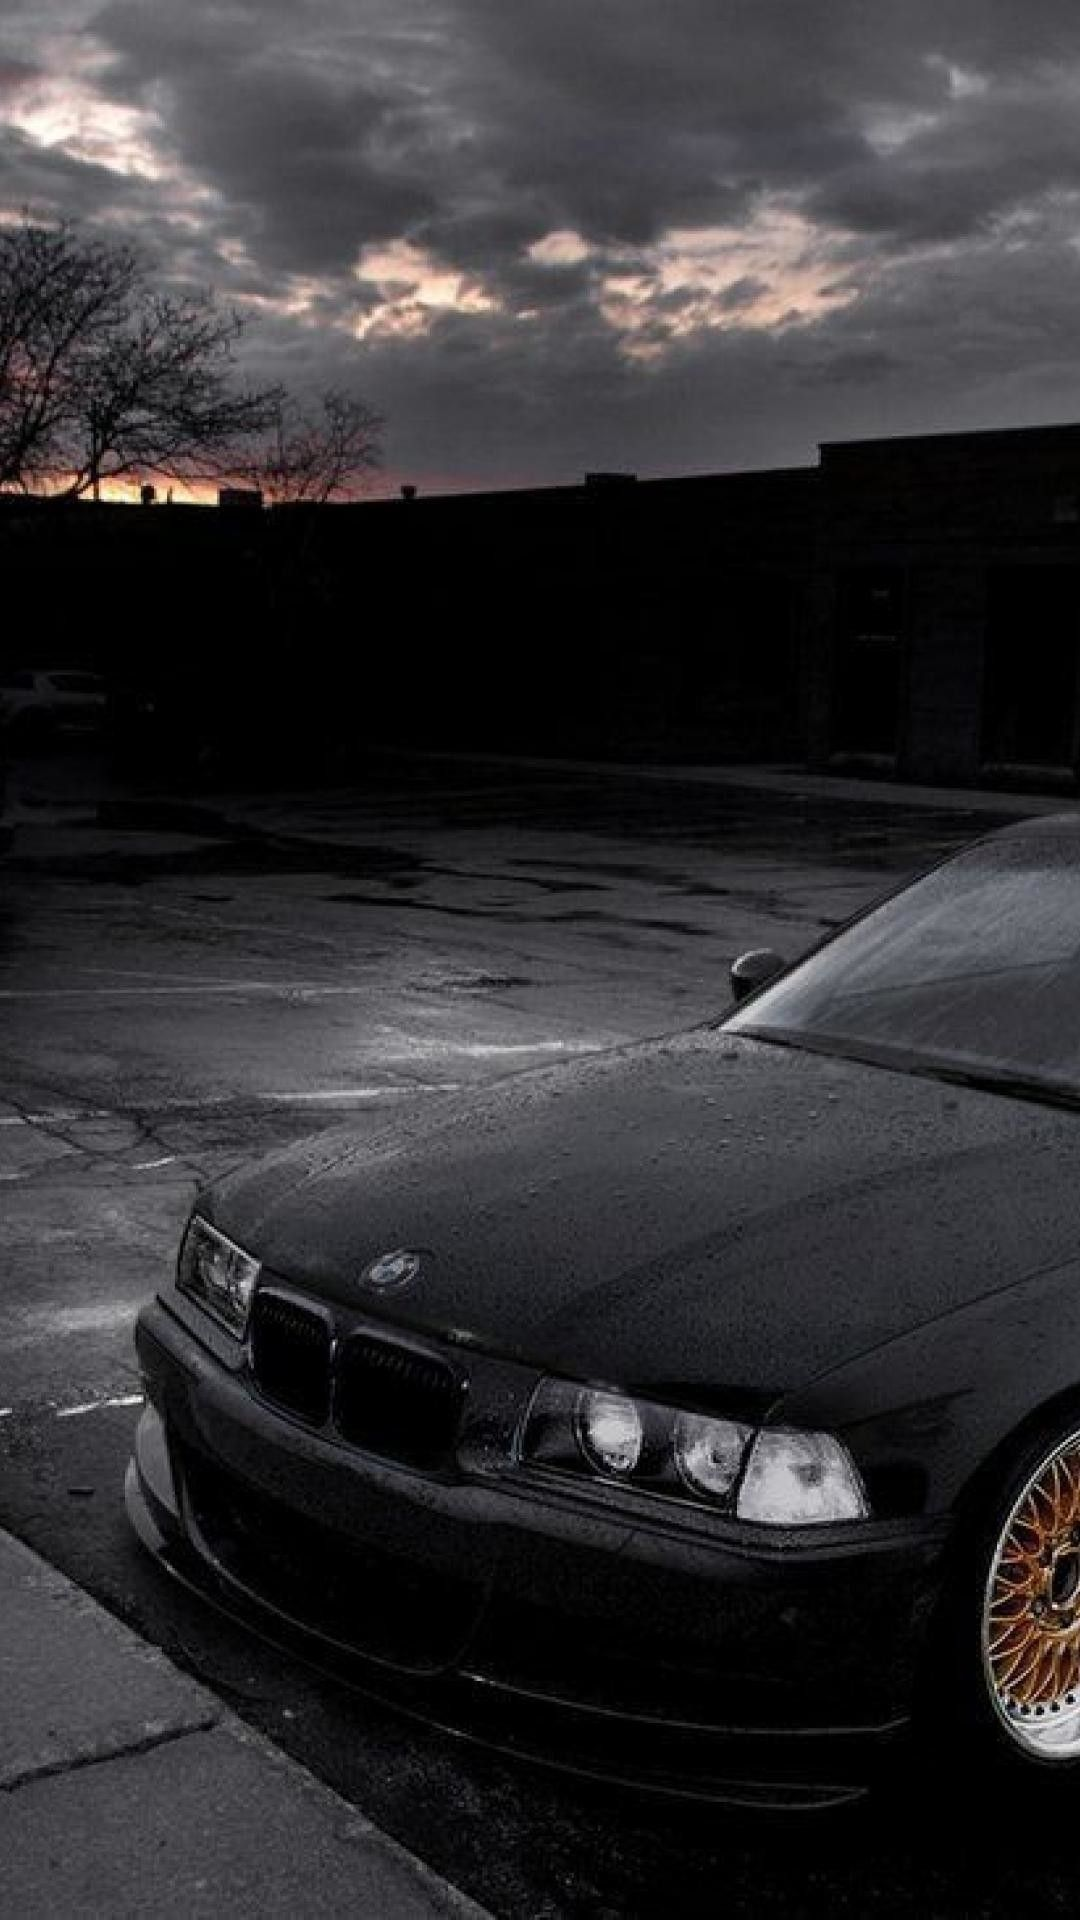 Bmw E36 Wallpaper Hd 48 image collections of wallpapers Bmw 1080x1920